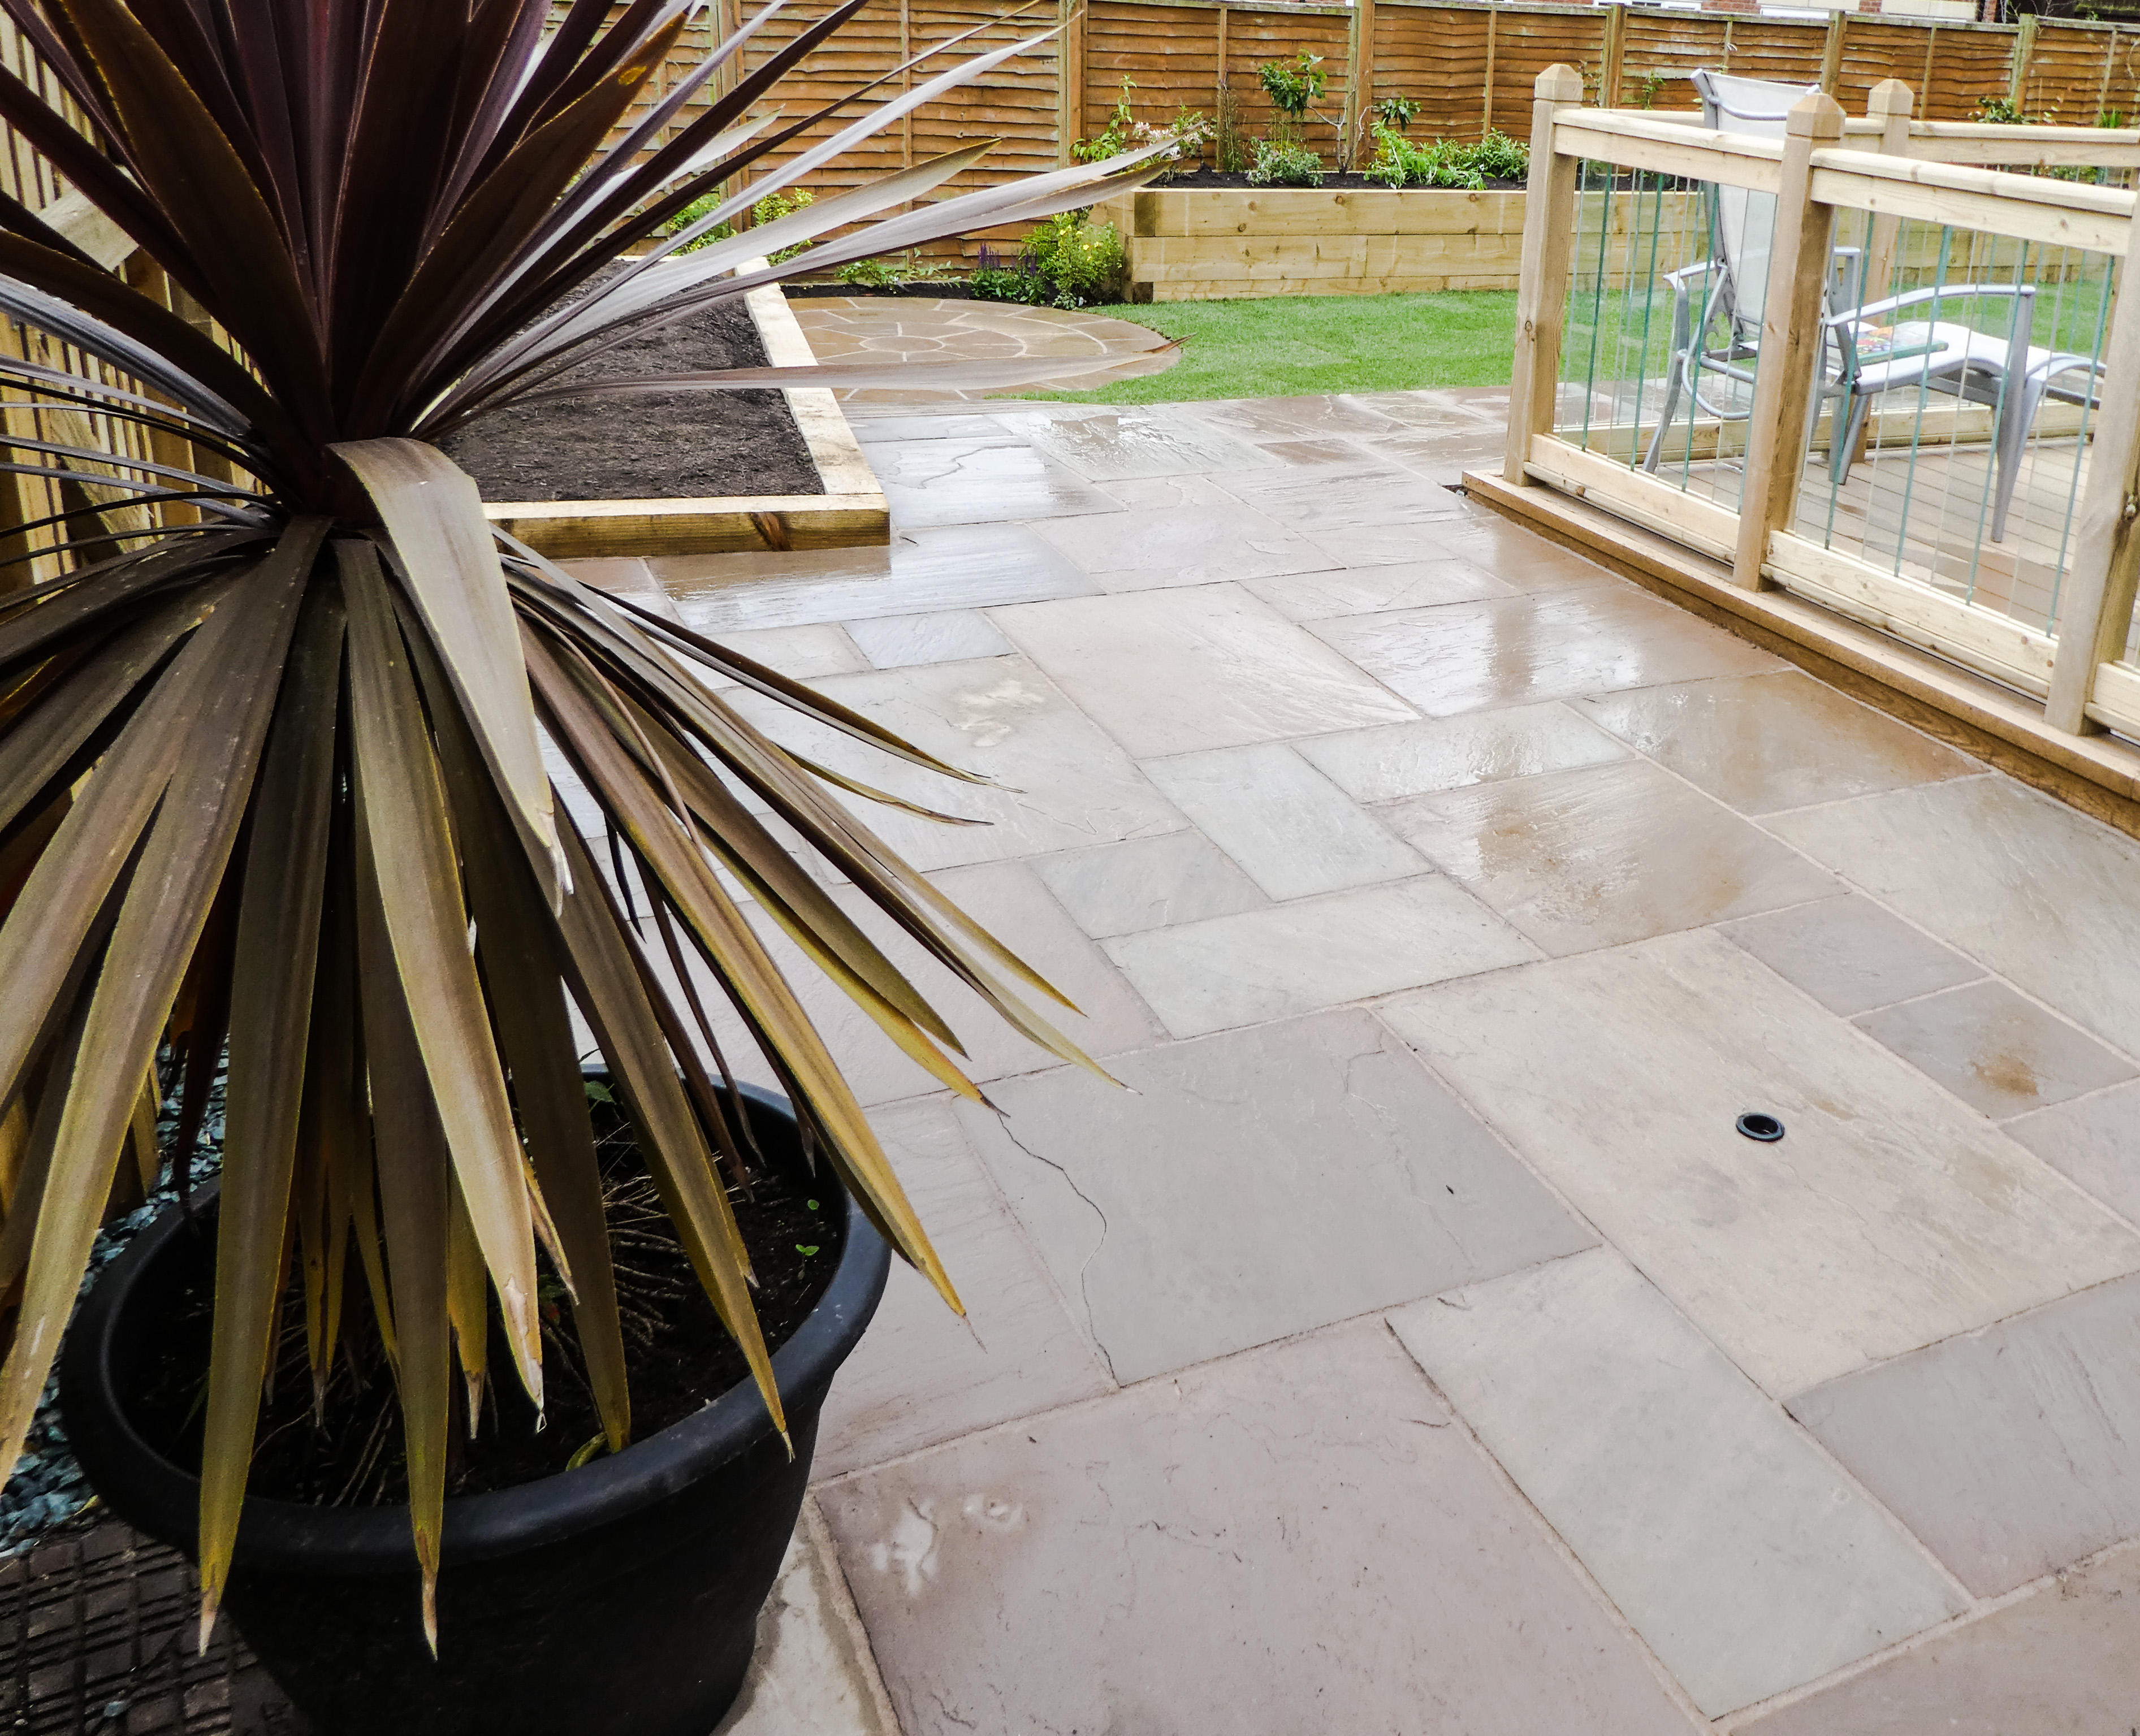 Indian Stone Patio - Landscaping in Cheshire